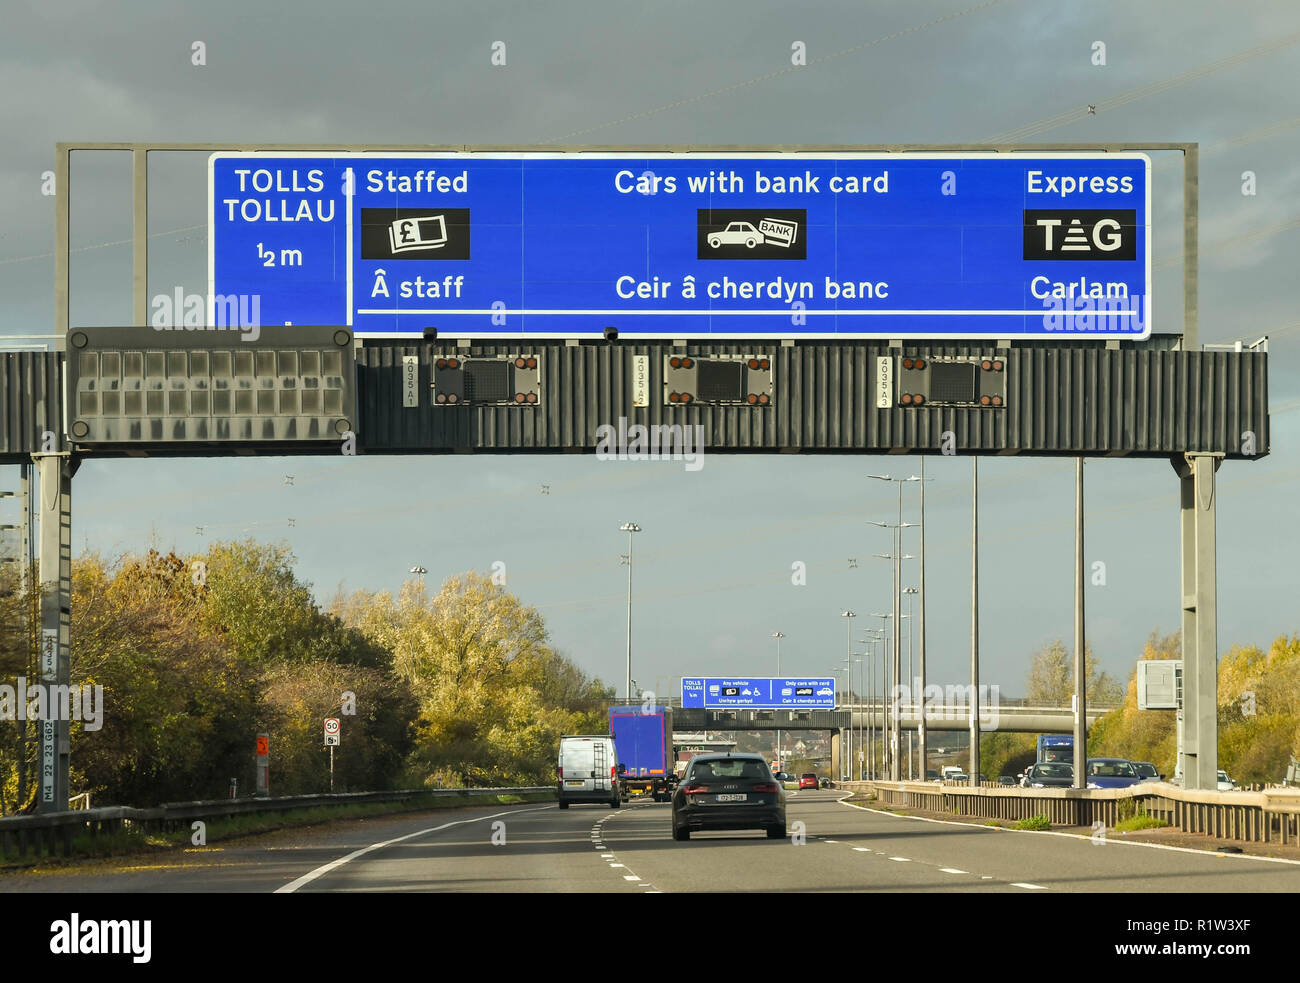 SECOND SEVERN CROSSING, WALES - NOVEMBER 2018: Gantry on the M4 motorway in Wales with information for drivers on paying the toll charges after using  - Stock Image